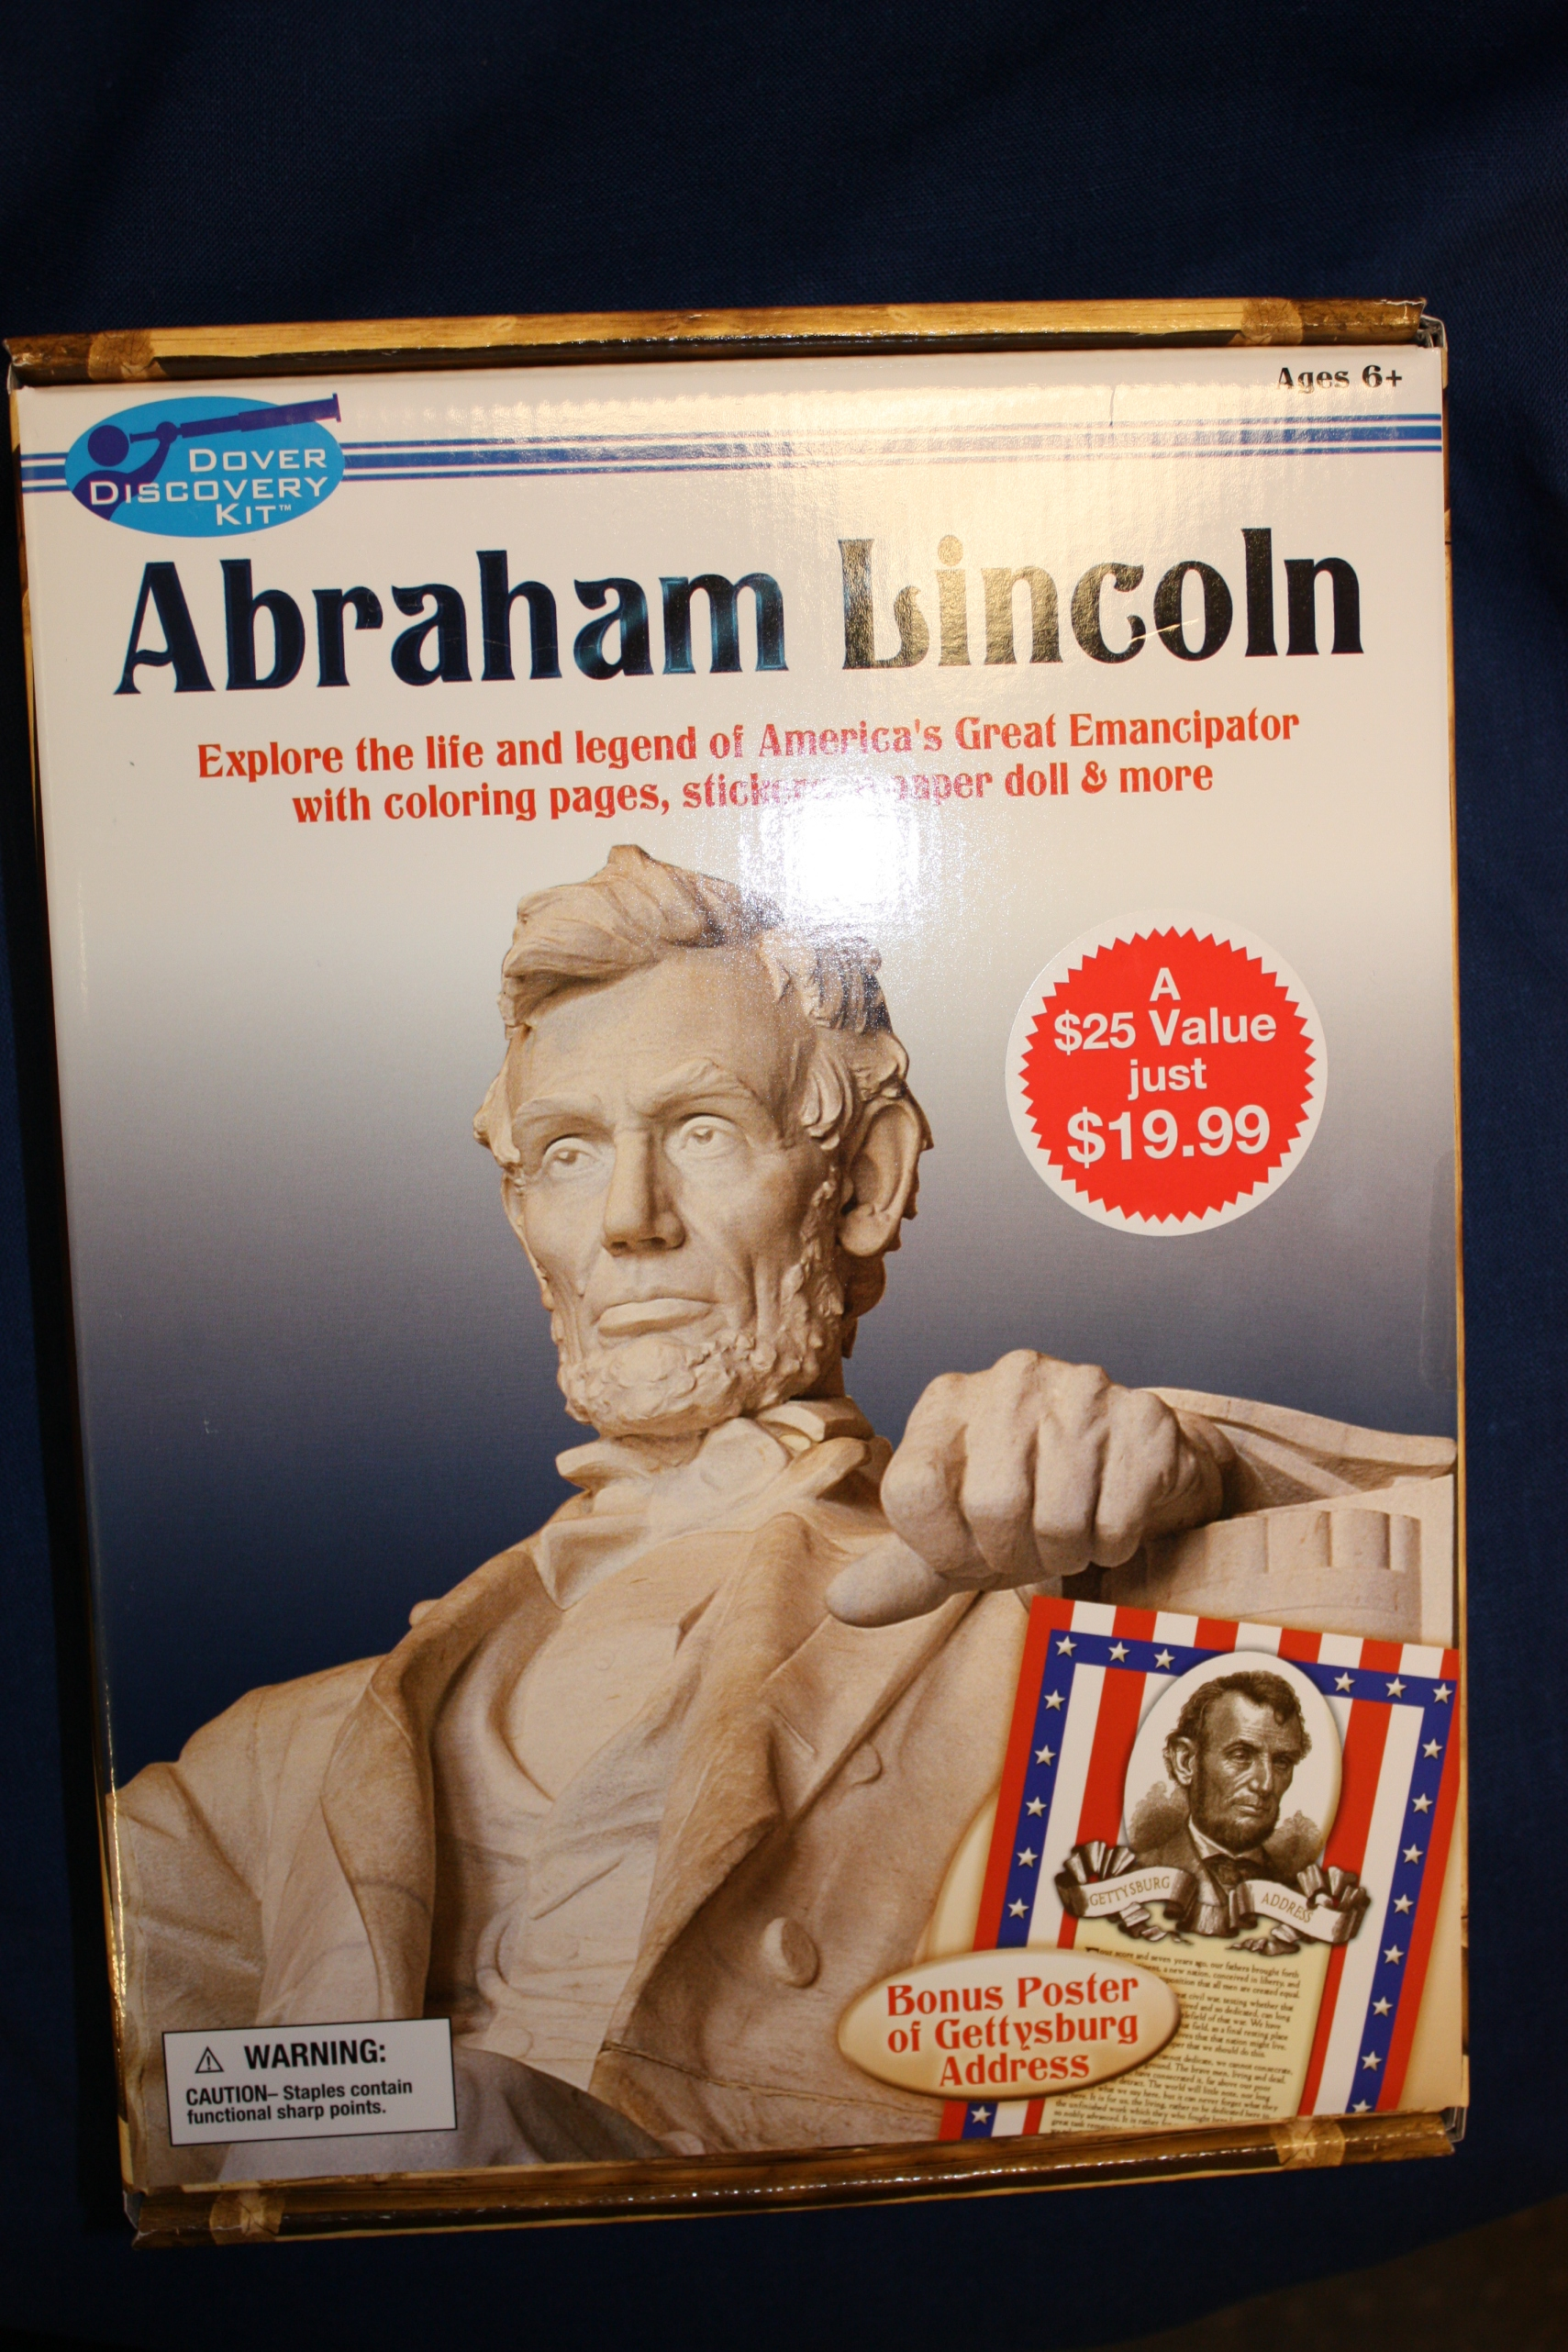 Abraham Lincoln Discovery Kit